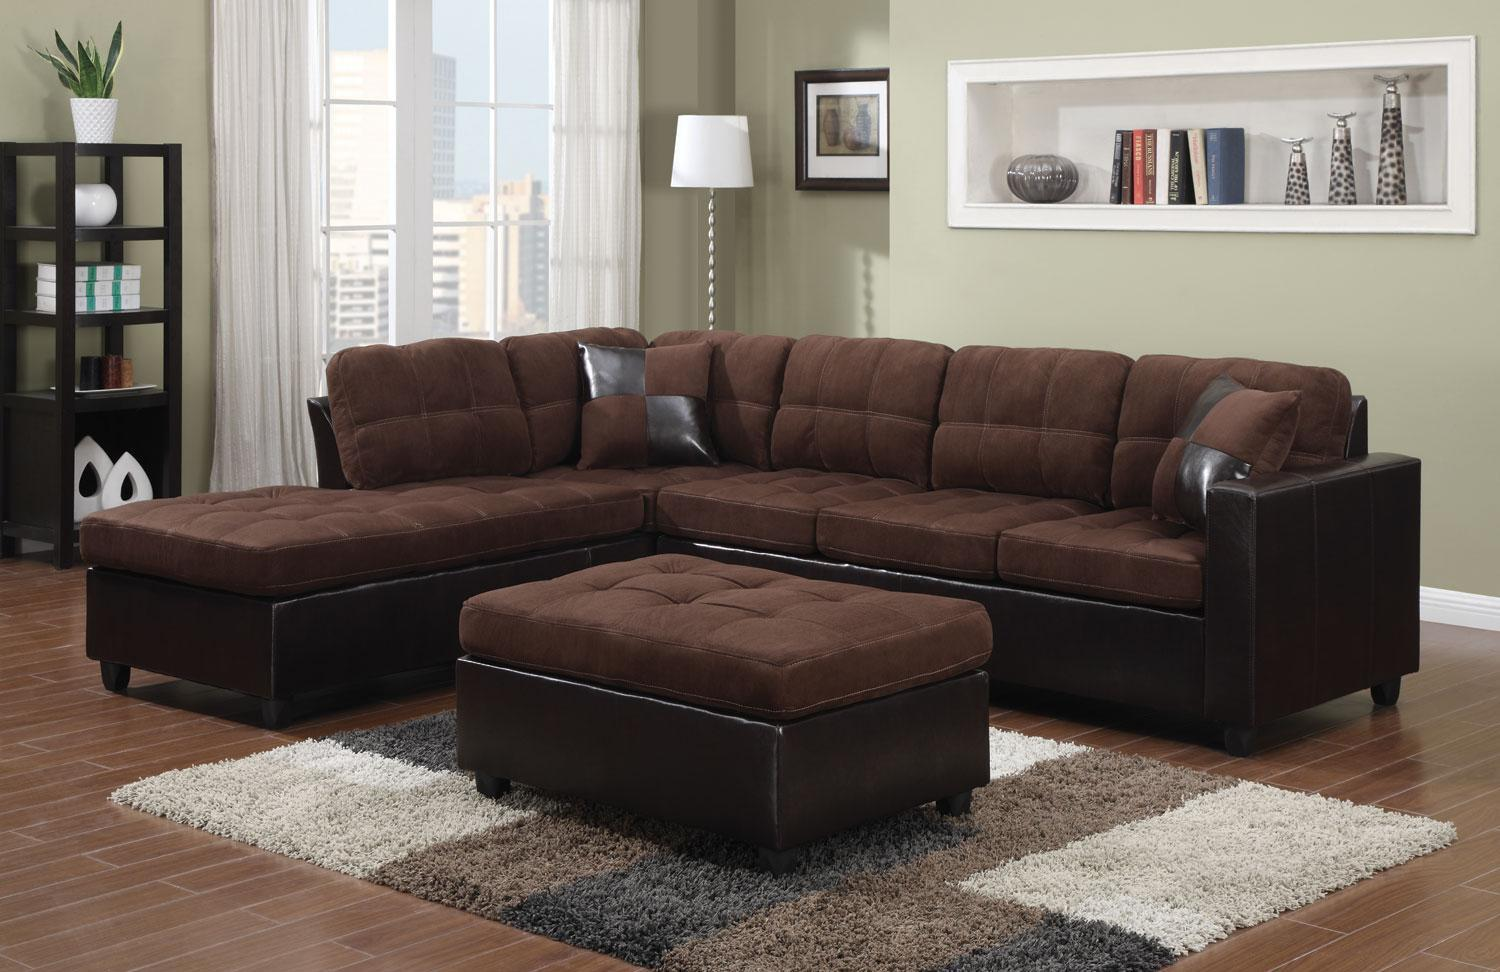 Mallory Lf Iv Sectional Sofa 505655